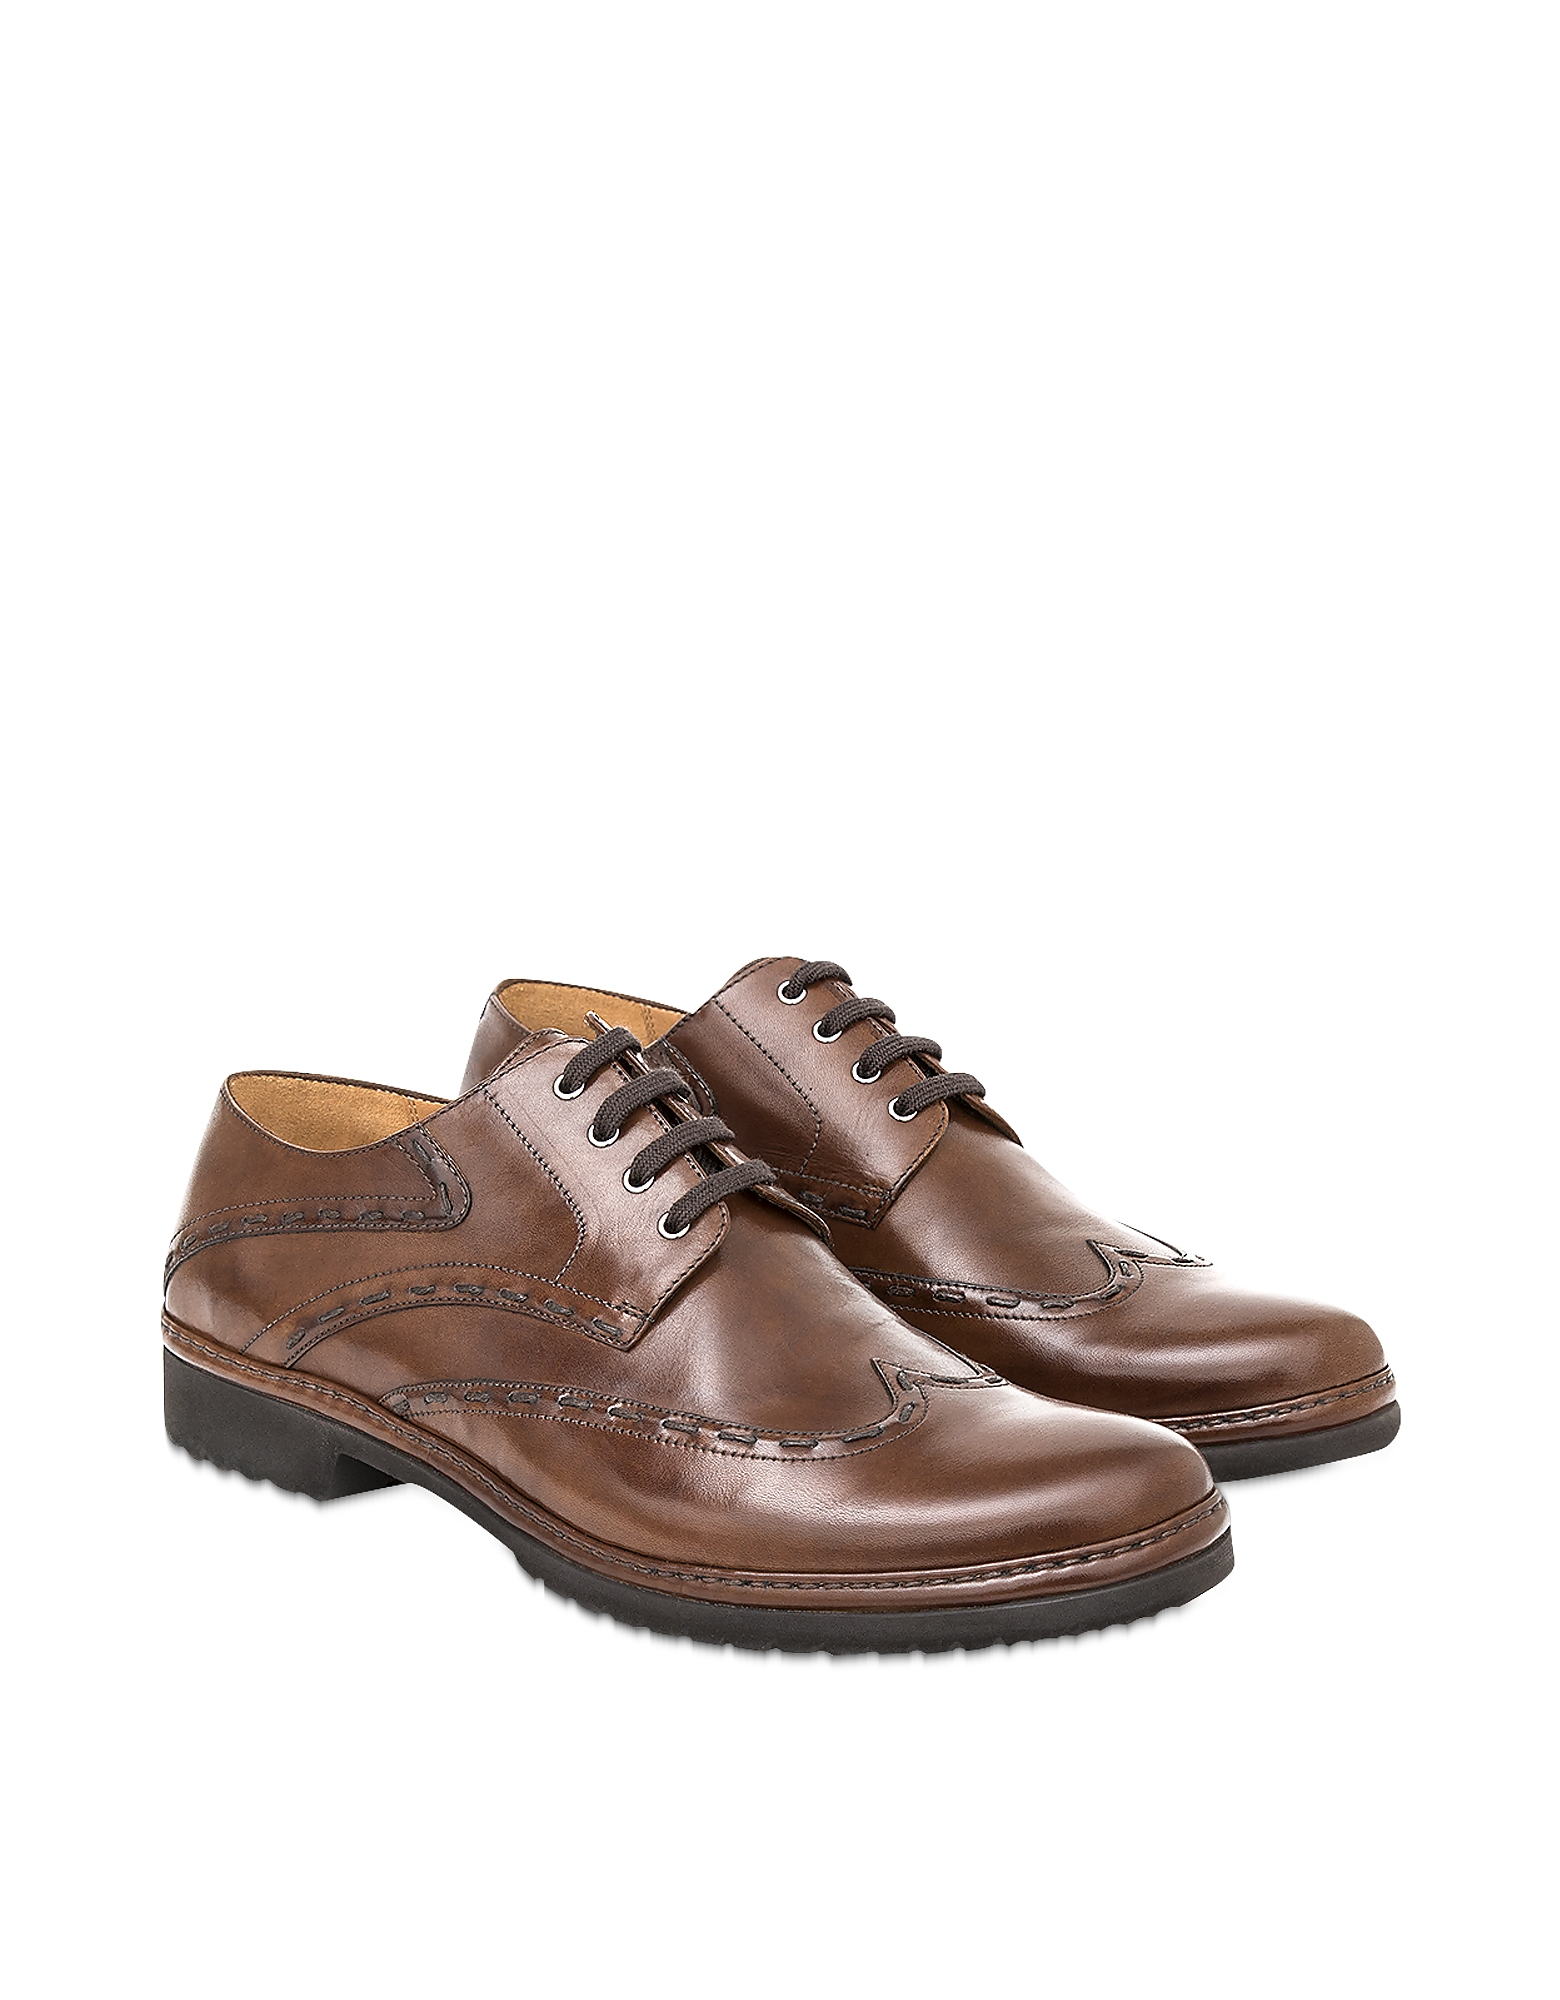 Pakerson Designer Shoes, Cocoa Cortona Derby Shoes